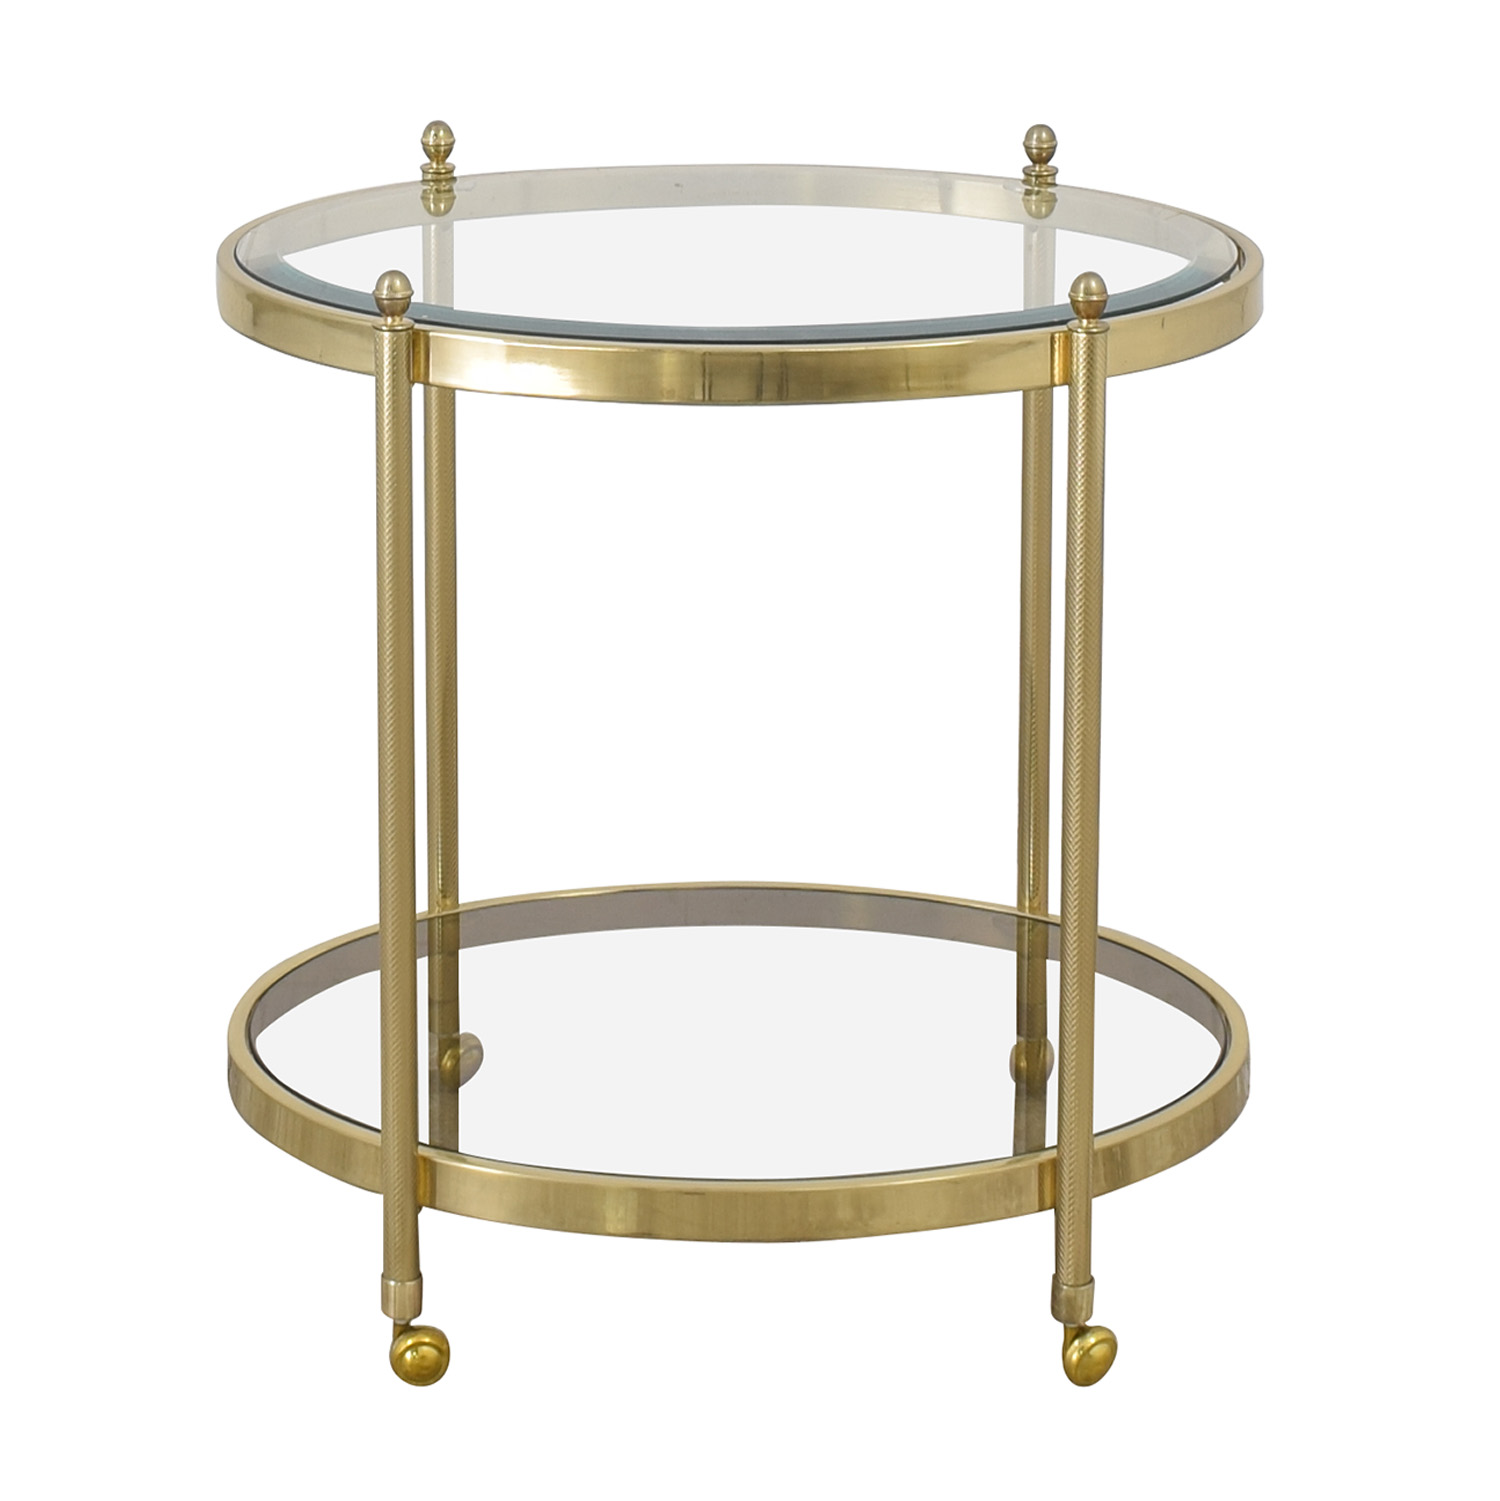 Oval Brass and Glass End Table with Casters / End Tables